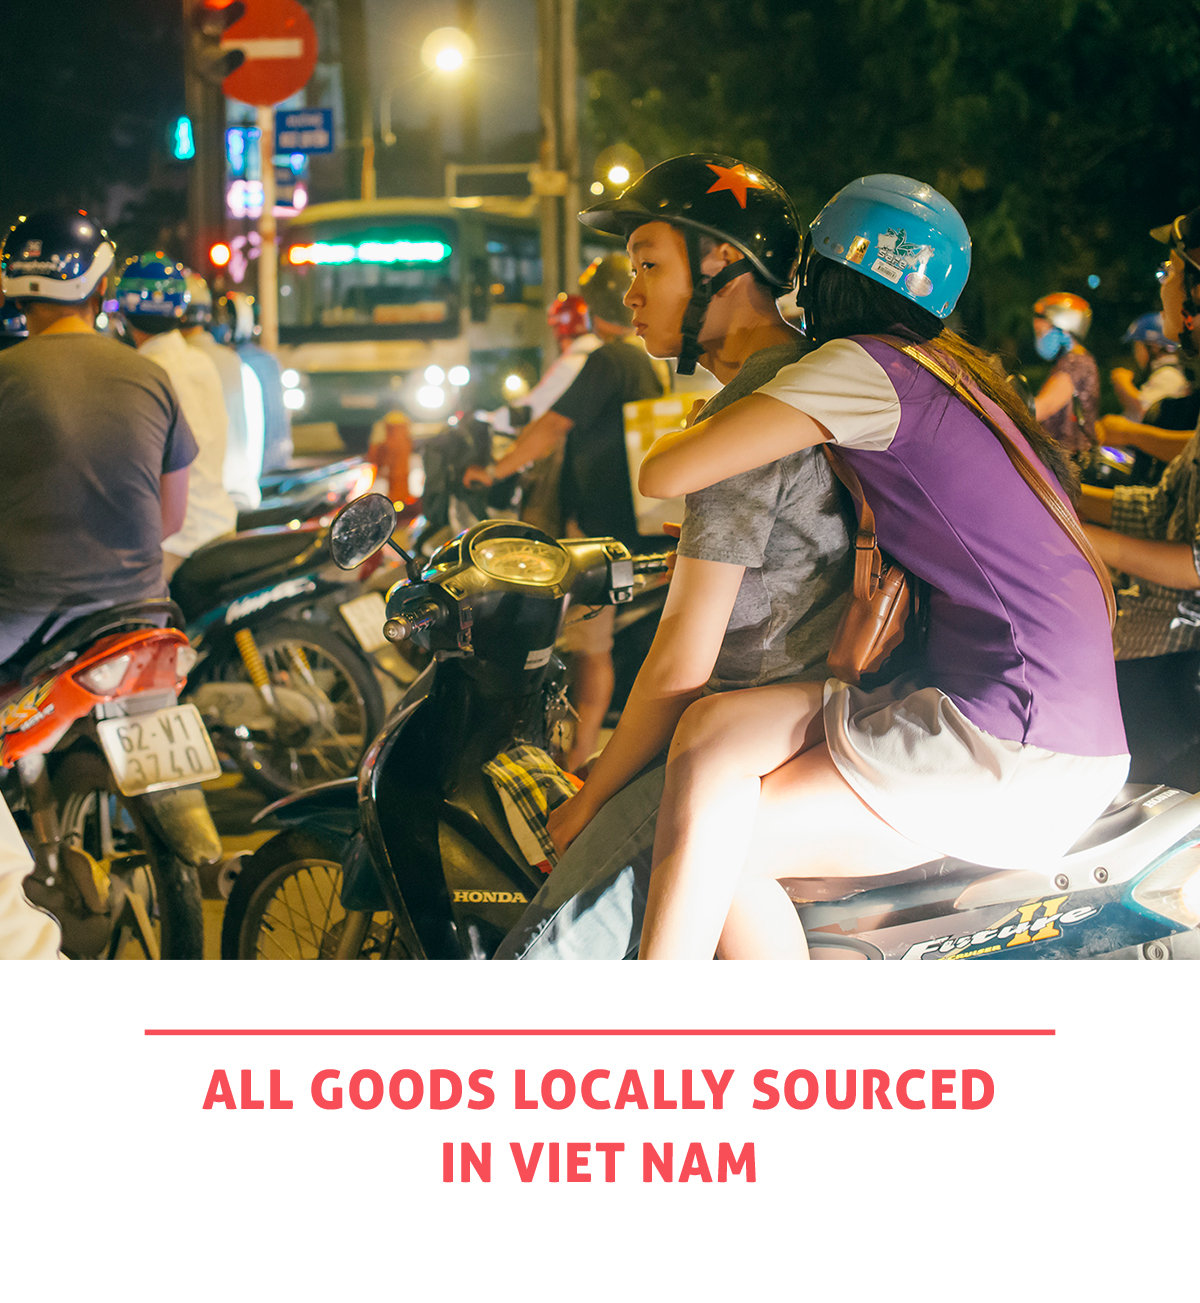 RAD AND HUNGRY: All goods locally sourced in Vietnam